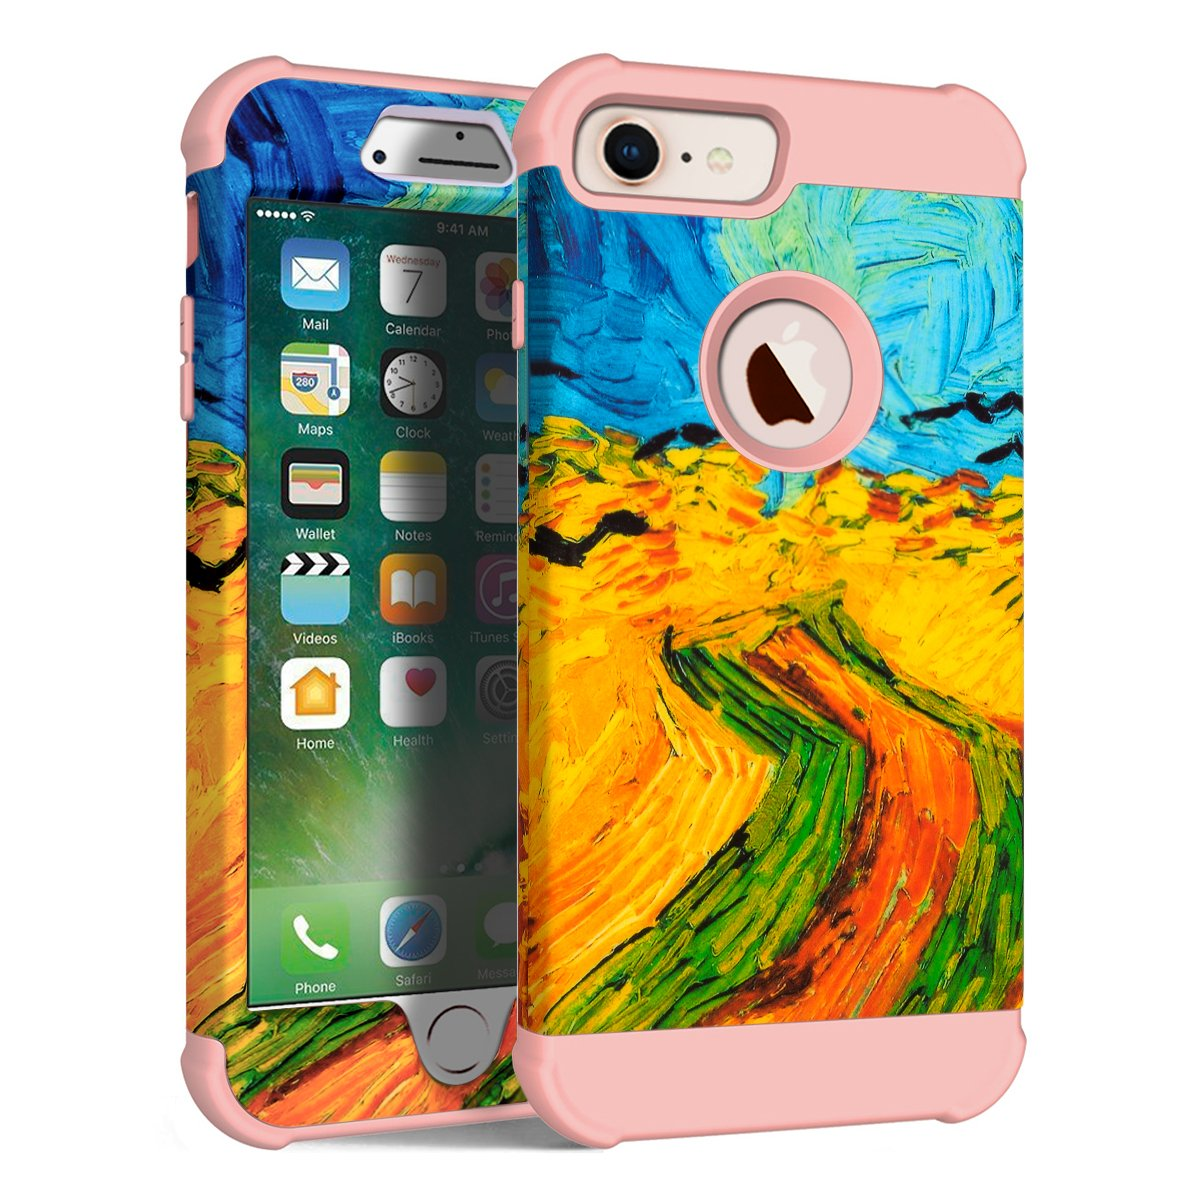 MAXCURY Vincent Willem Van Gogh Painting Series Three Layer Heavy Duty Protective Cover Case for iPhone 6/6s/7/8 Regular Size in 4.7 Inch (Wheat Field with Crows - Rose Gold)